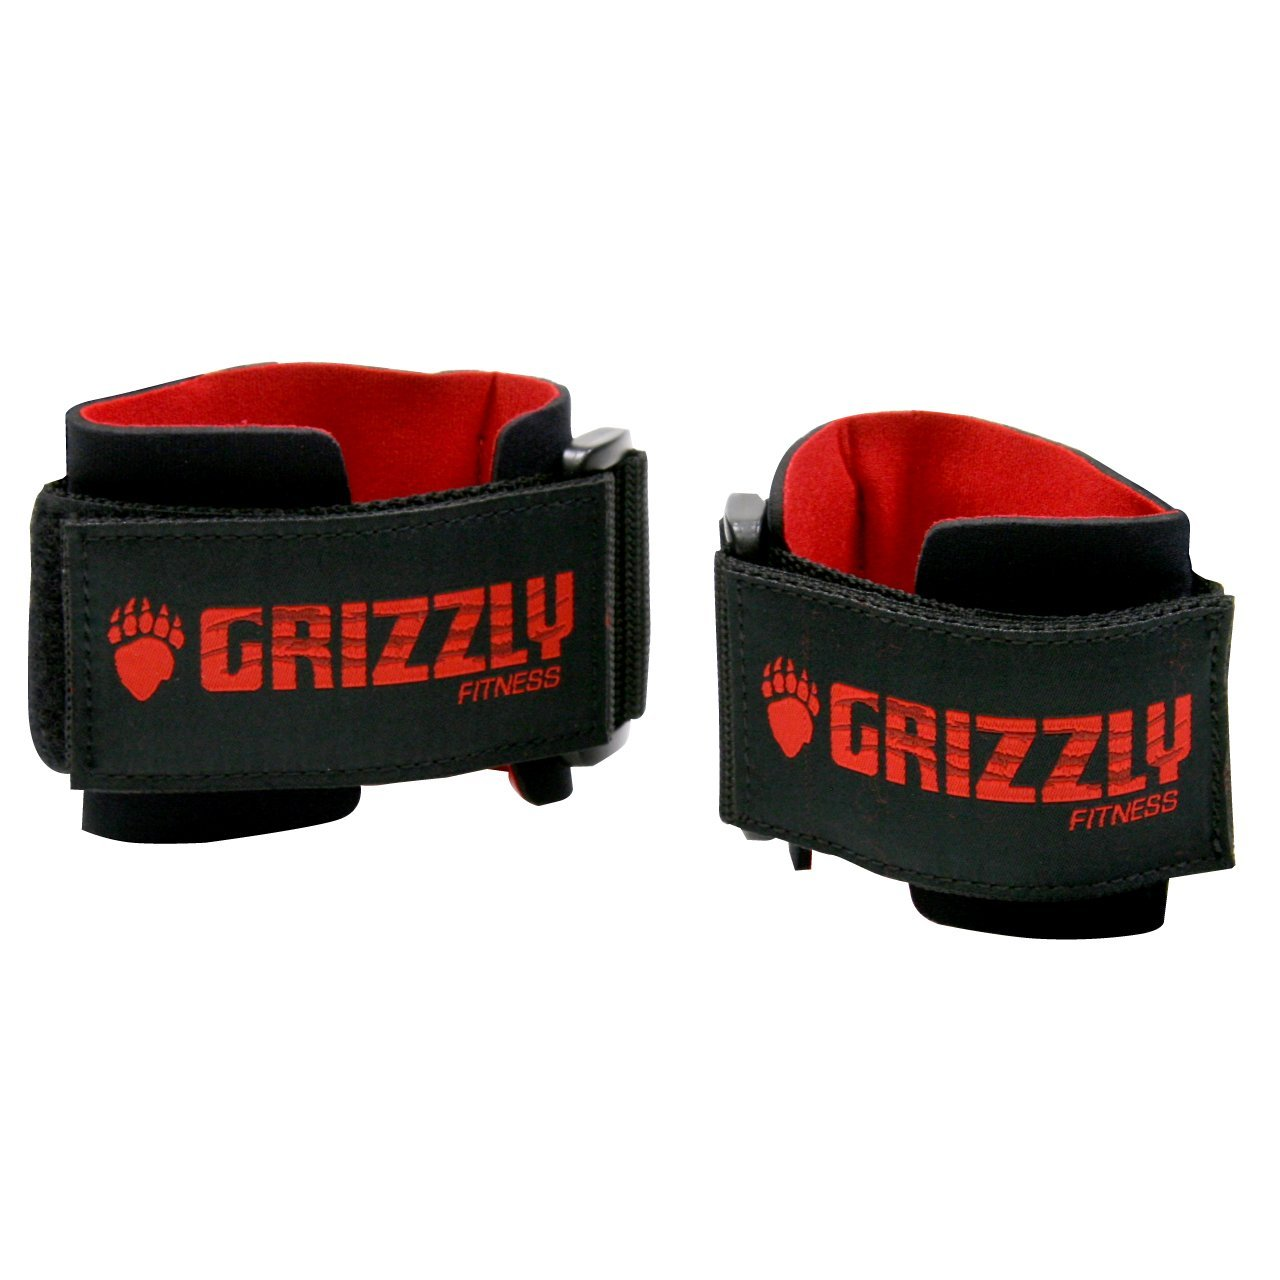 7. Grizzly Fitness Training Wrist Wraps